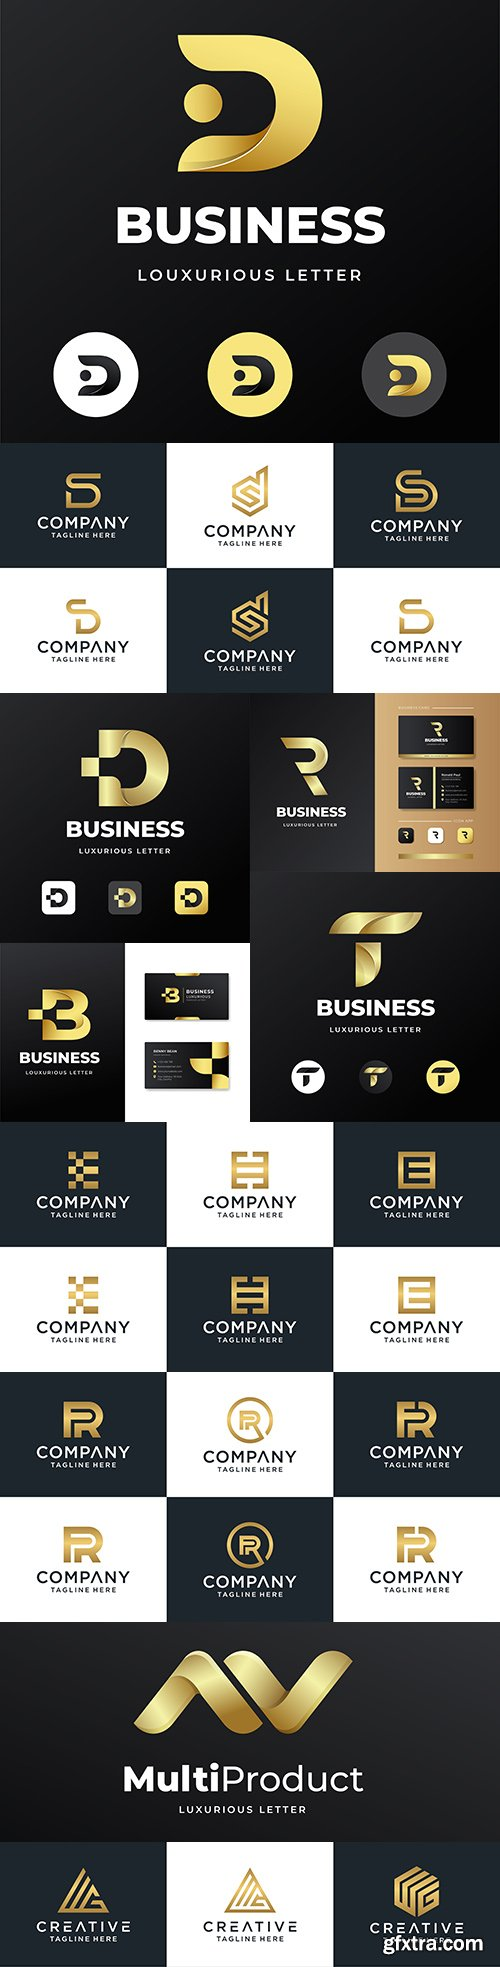 Brand name company business corporate logos design 17